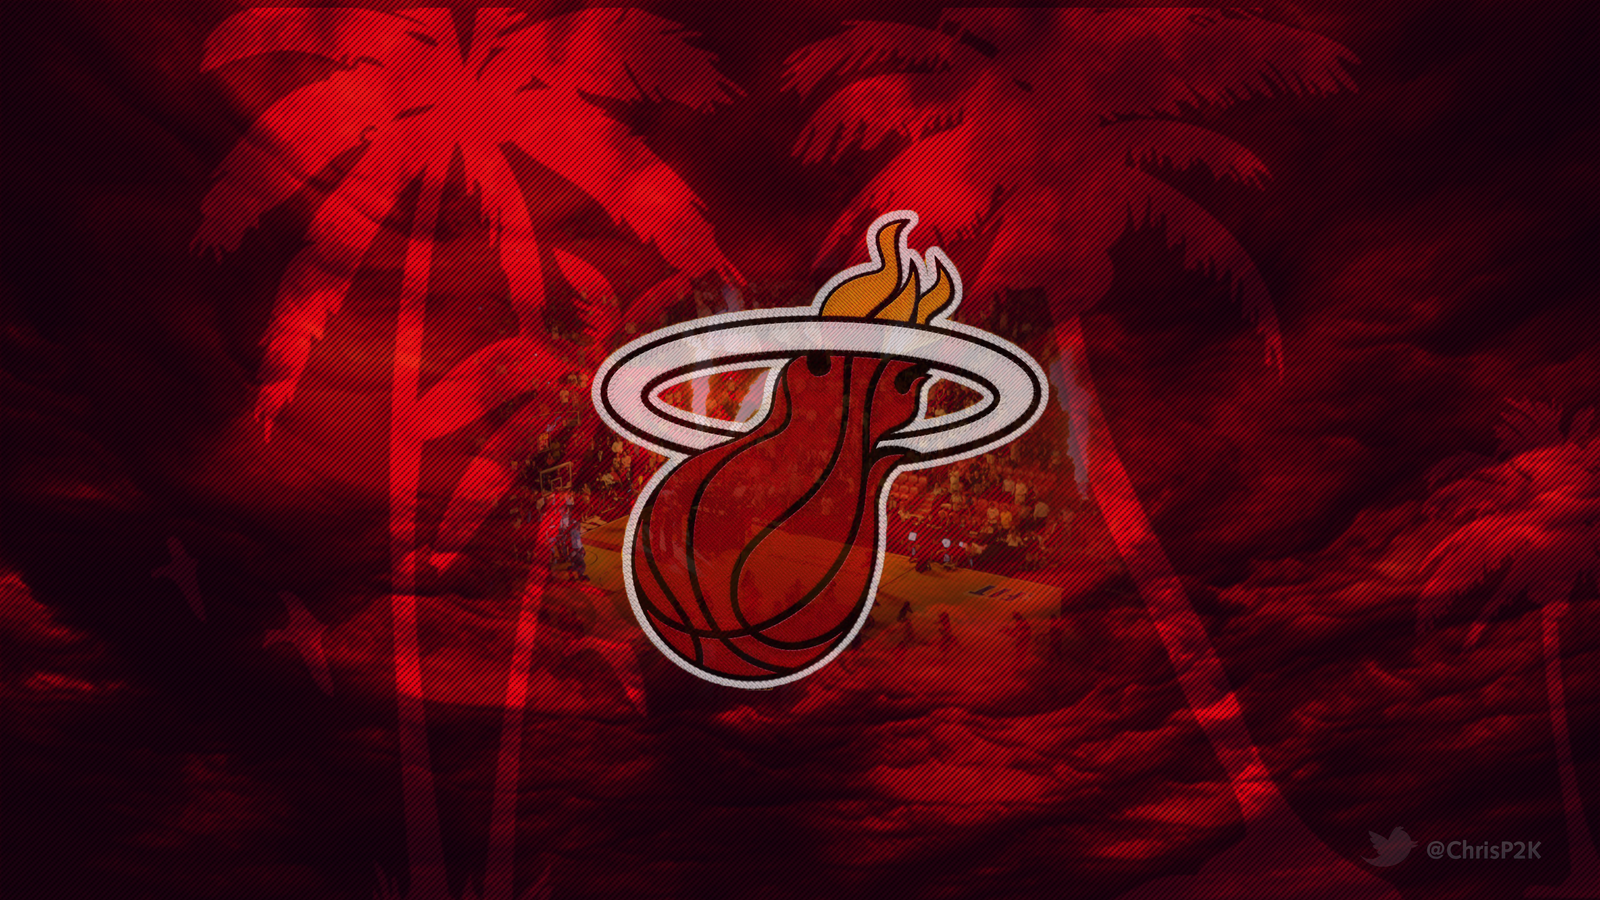 29] Miami Heat Background 2017 on WallpaperSafari 1600x900